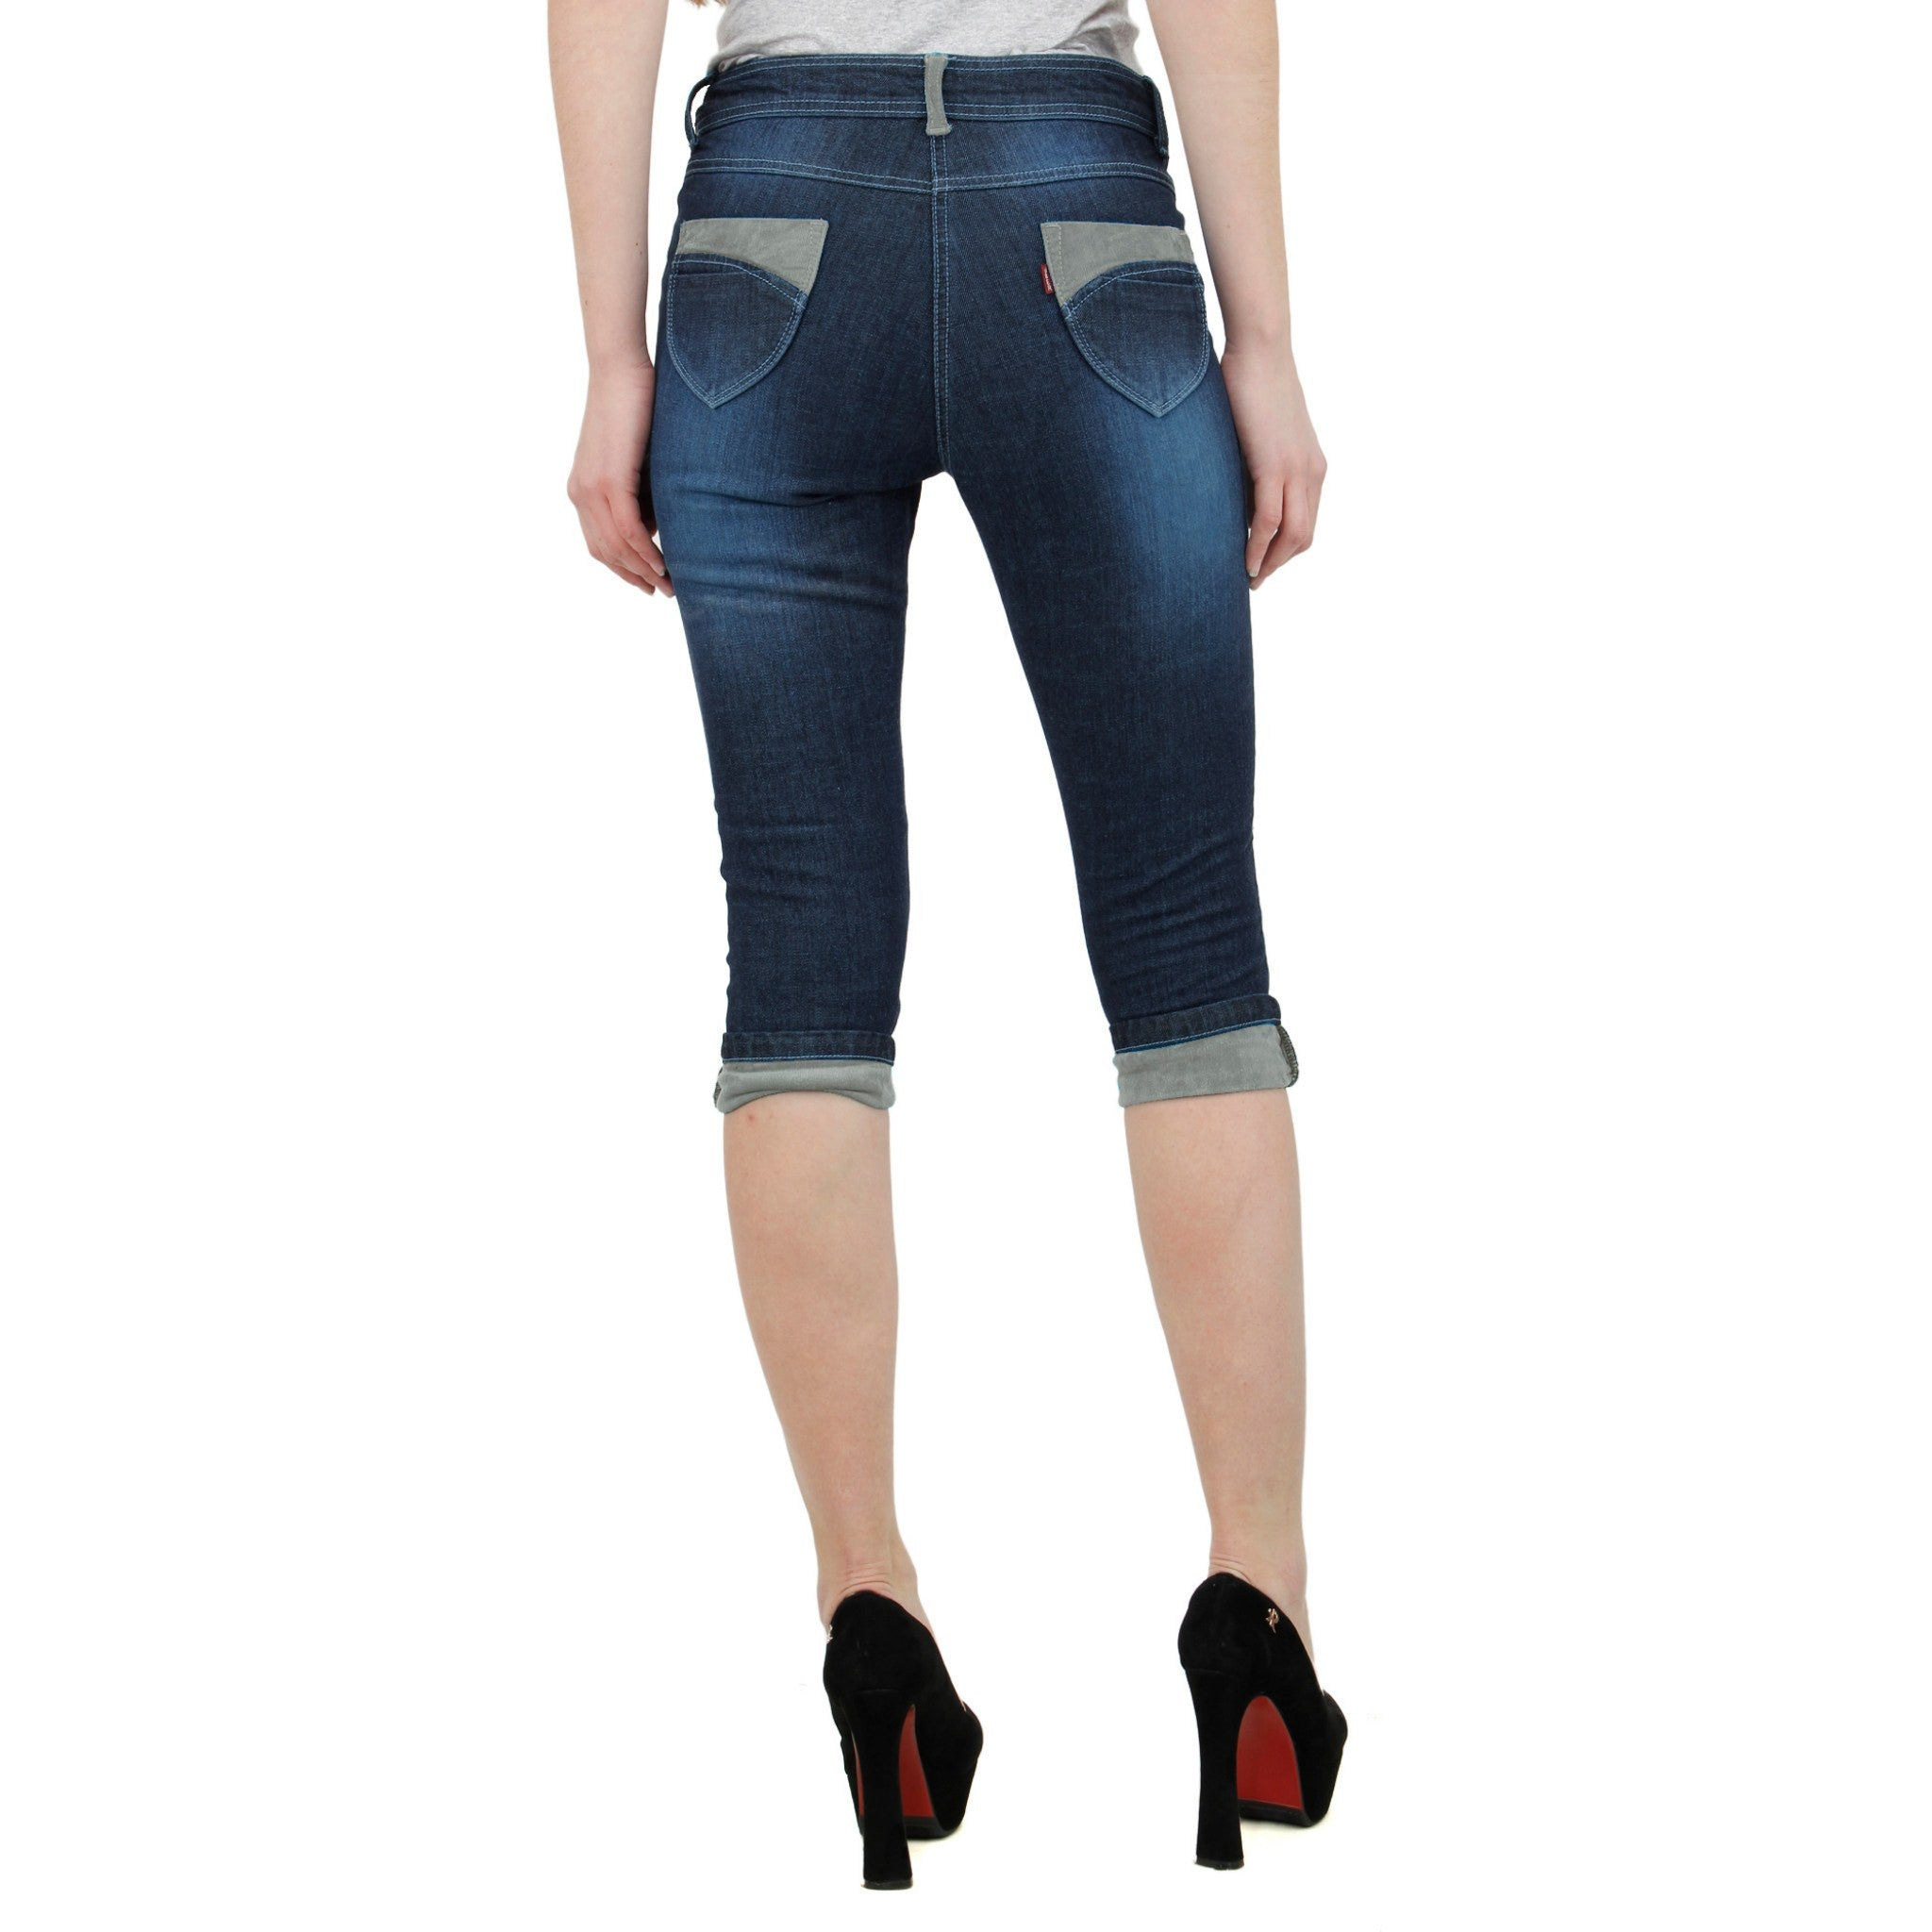 Midnight Blue Denim Capri back view